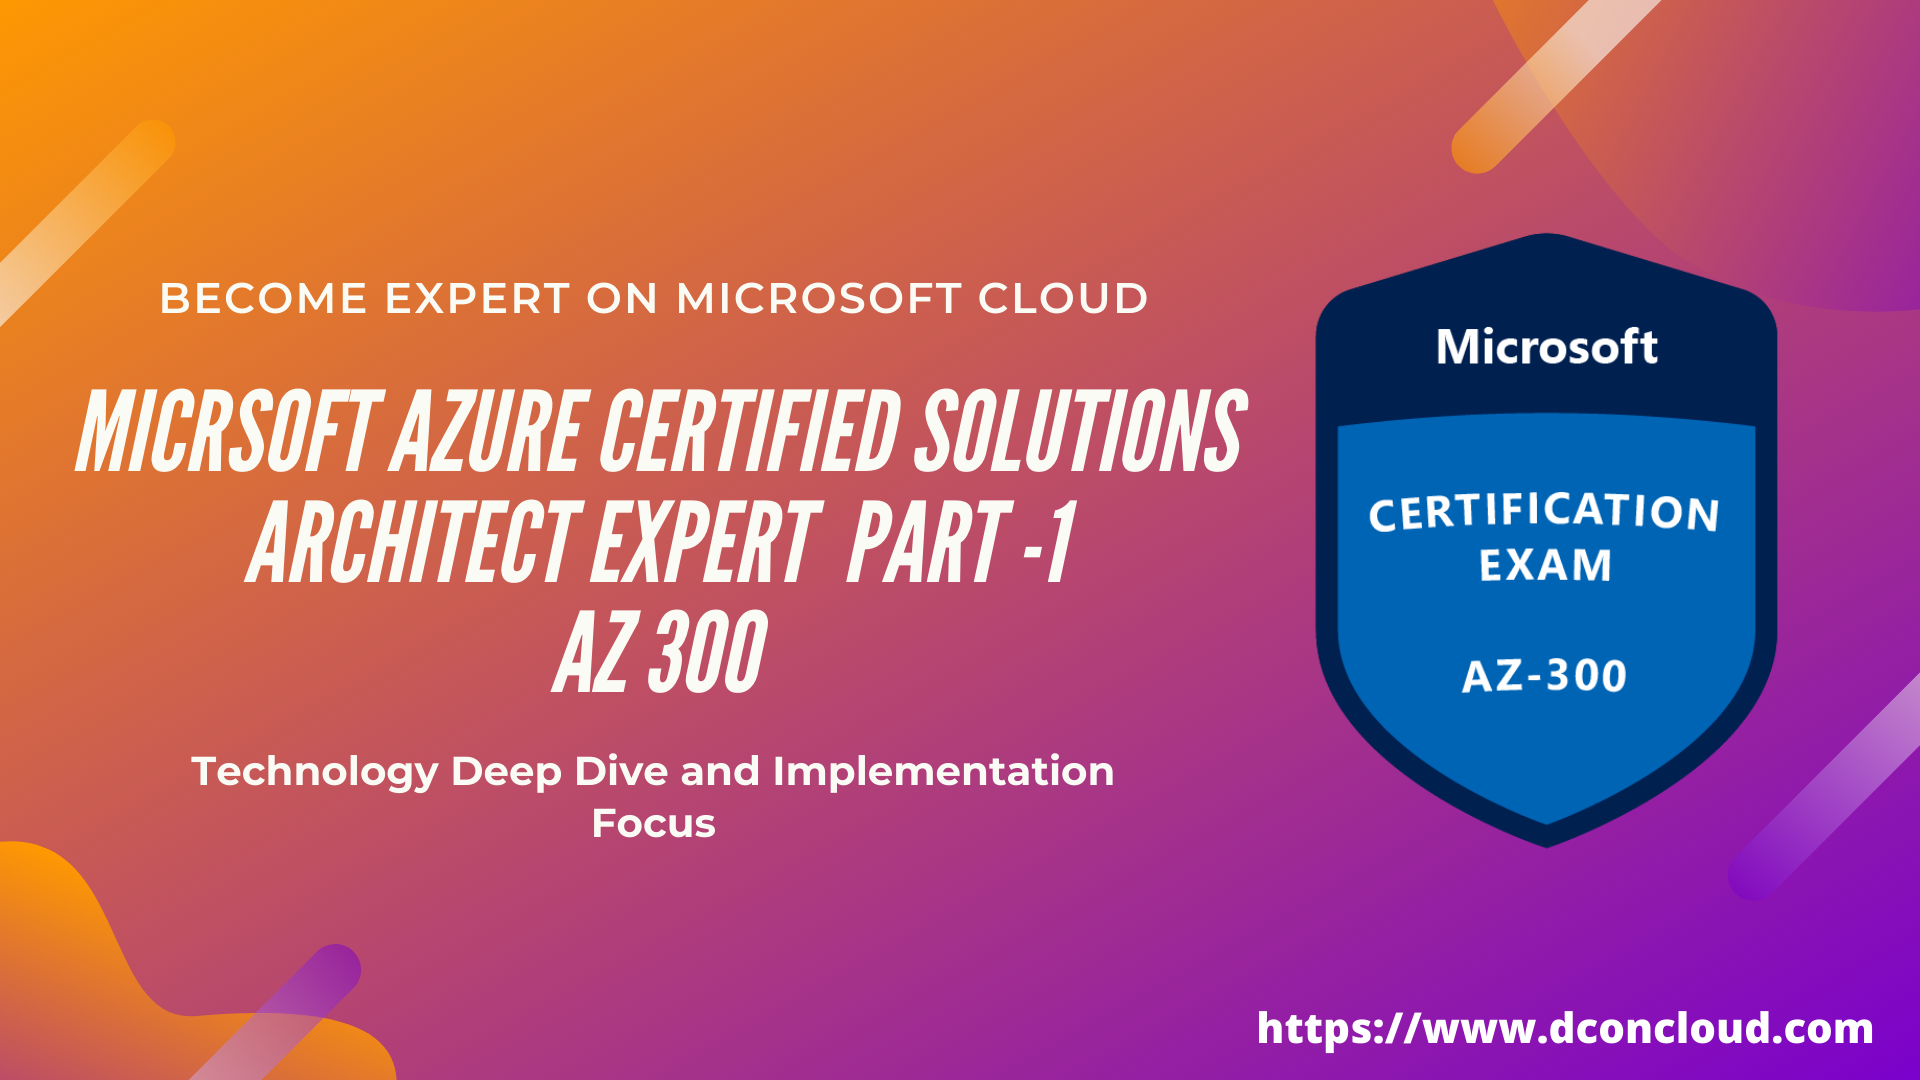 Tips to Pass Azure Architect Exam AZ 300